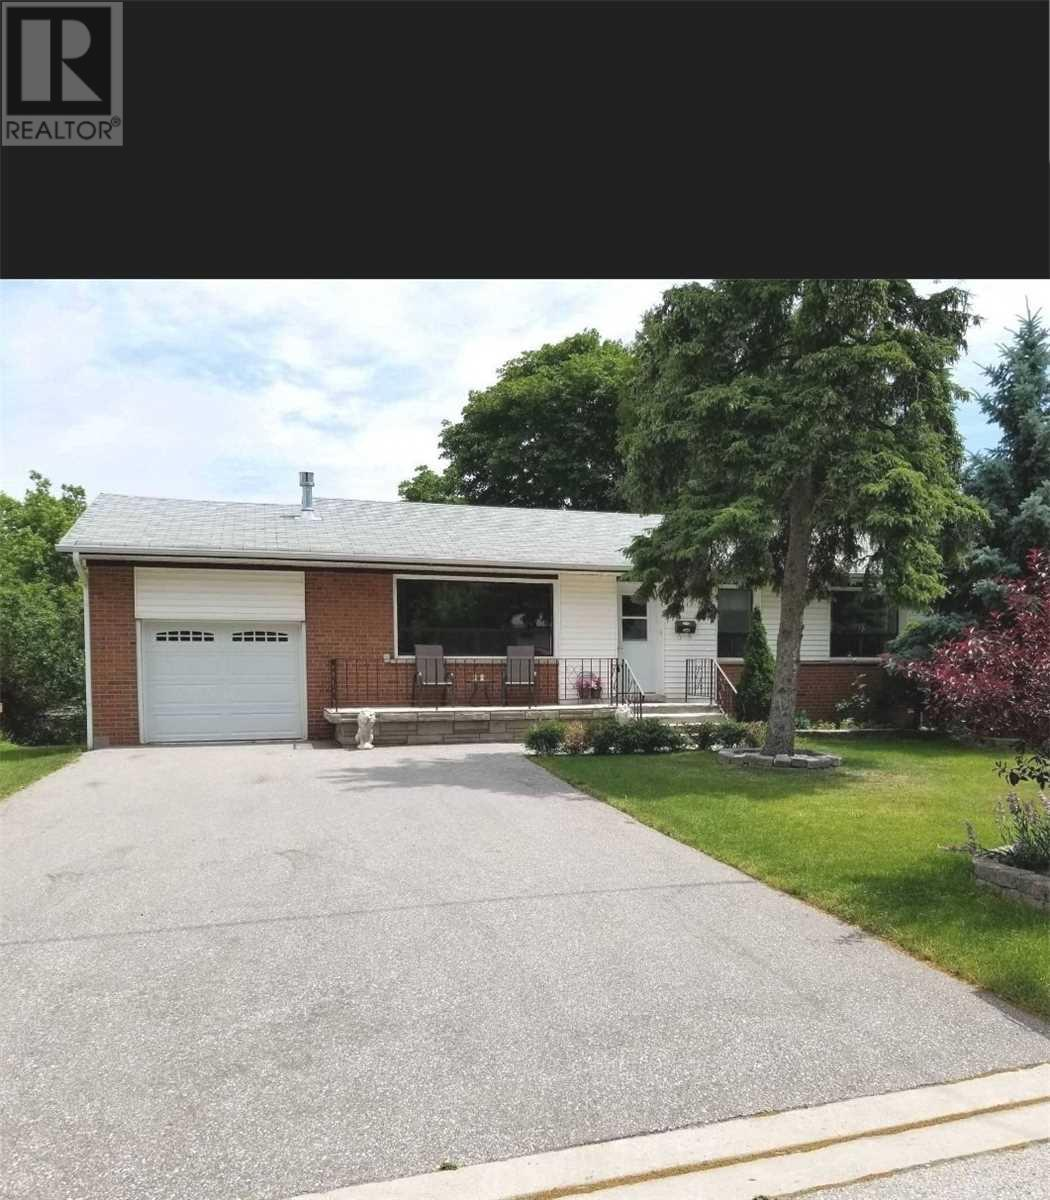 17 Pioneer Dr, Mississauga, Ontario  L5M 1G8 - Photo 1 - W4657888